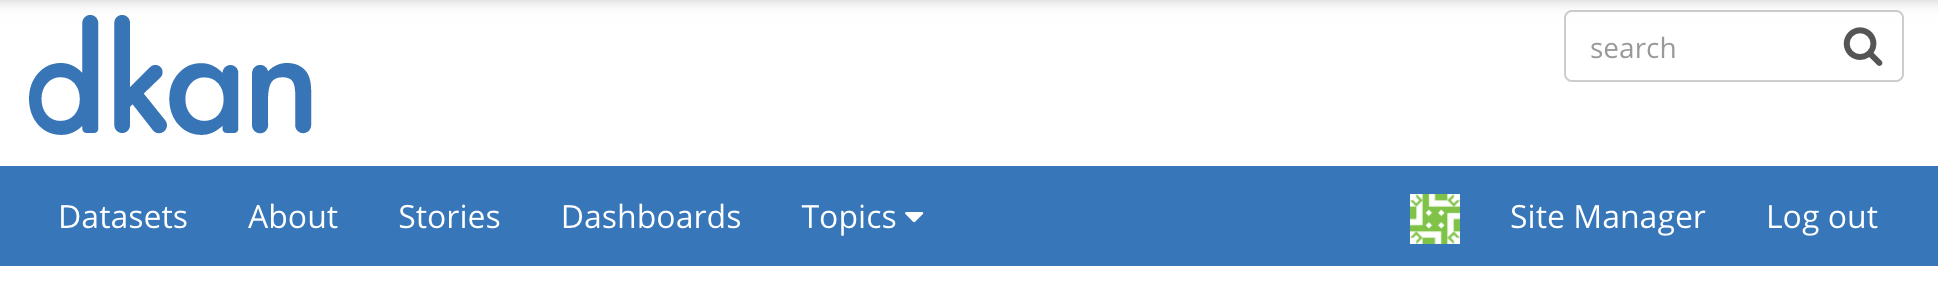 Click your username on the right side of the navigation bar in order to go to your profile page.